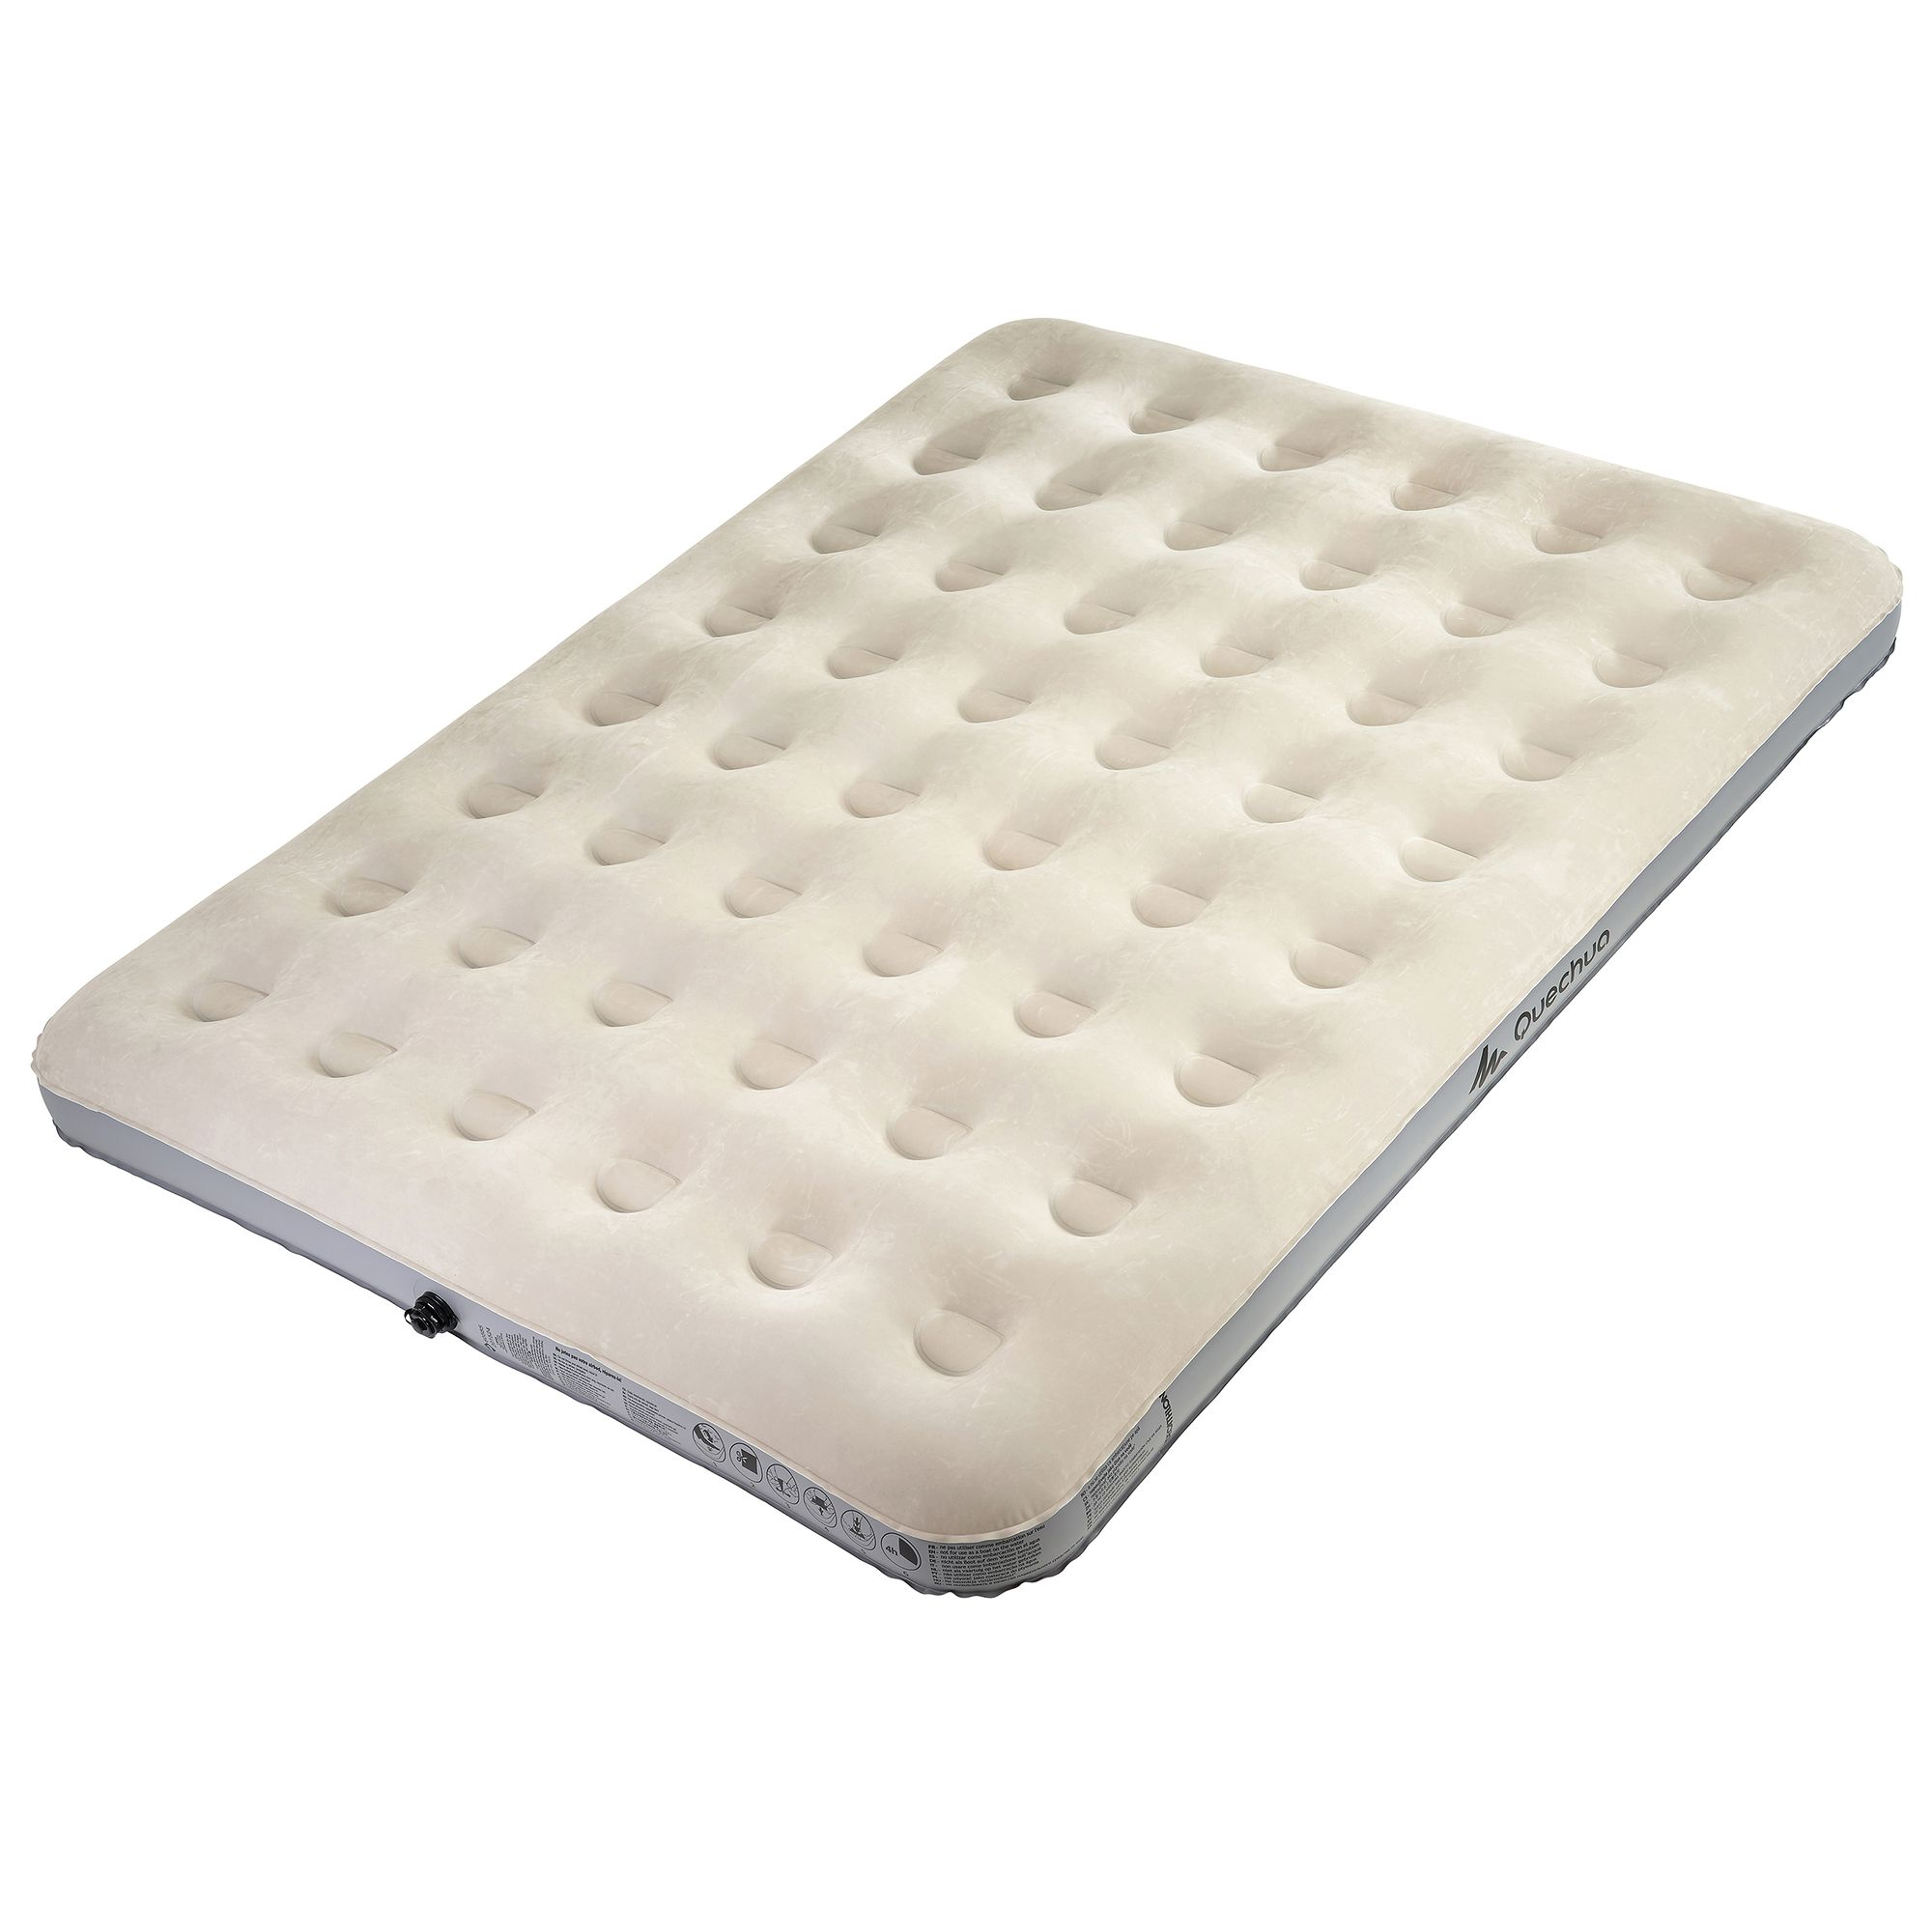 matelas gonflable de camping air basic 140 2 pers clubs collectivit s decathlon pro. Black Bedroom Furniture Sets. Home Design Ideas